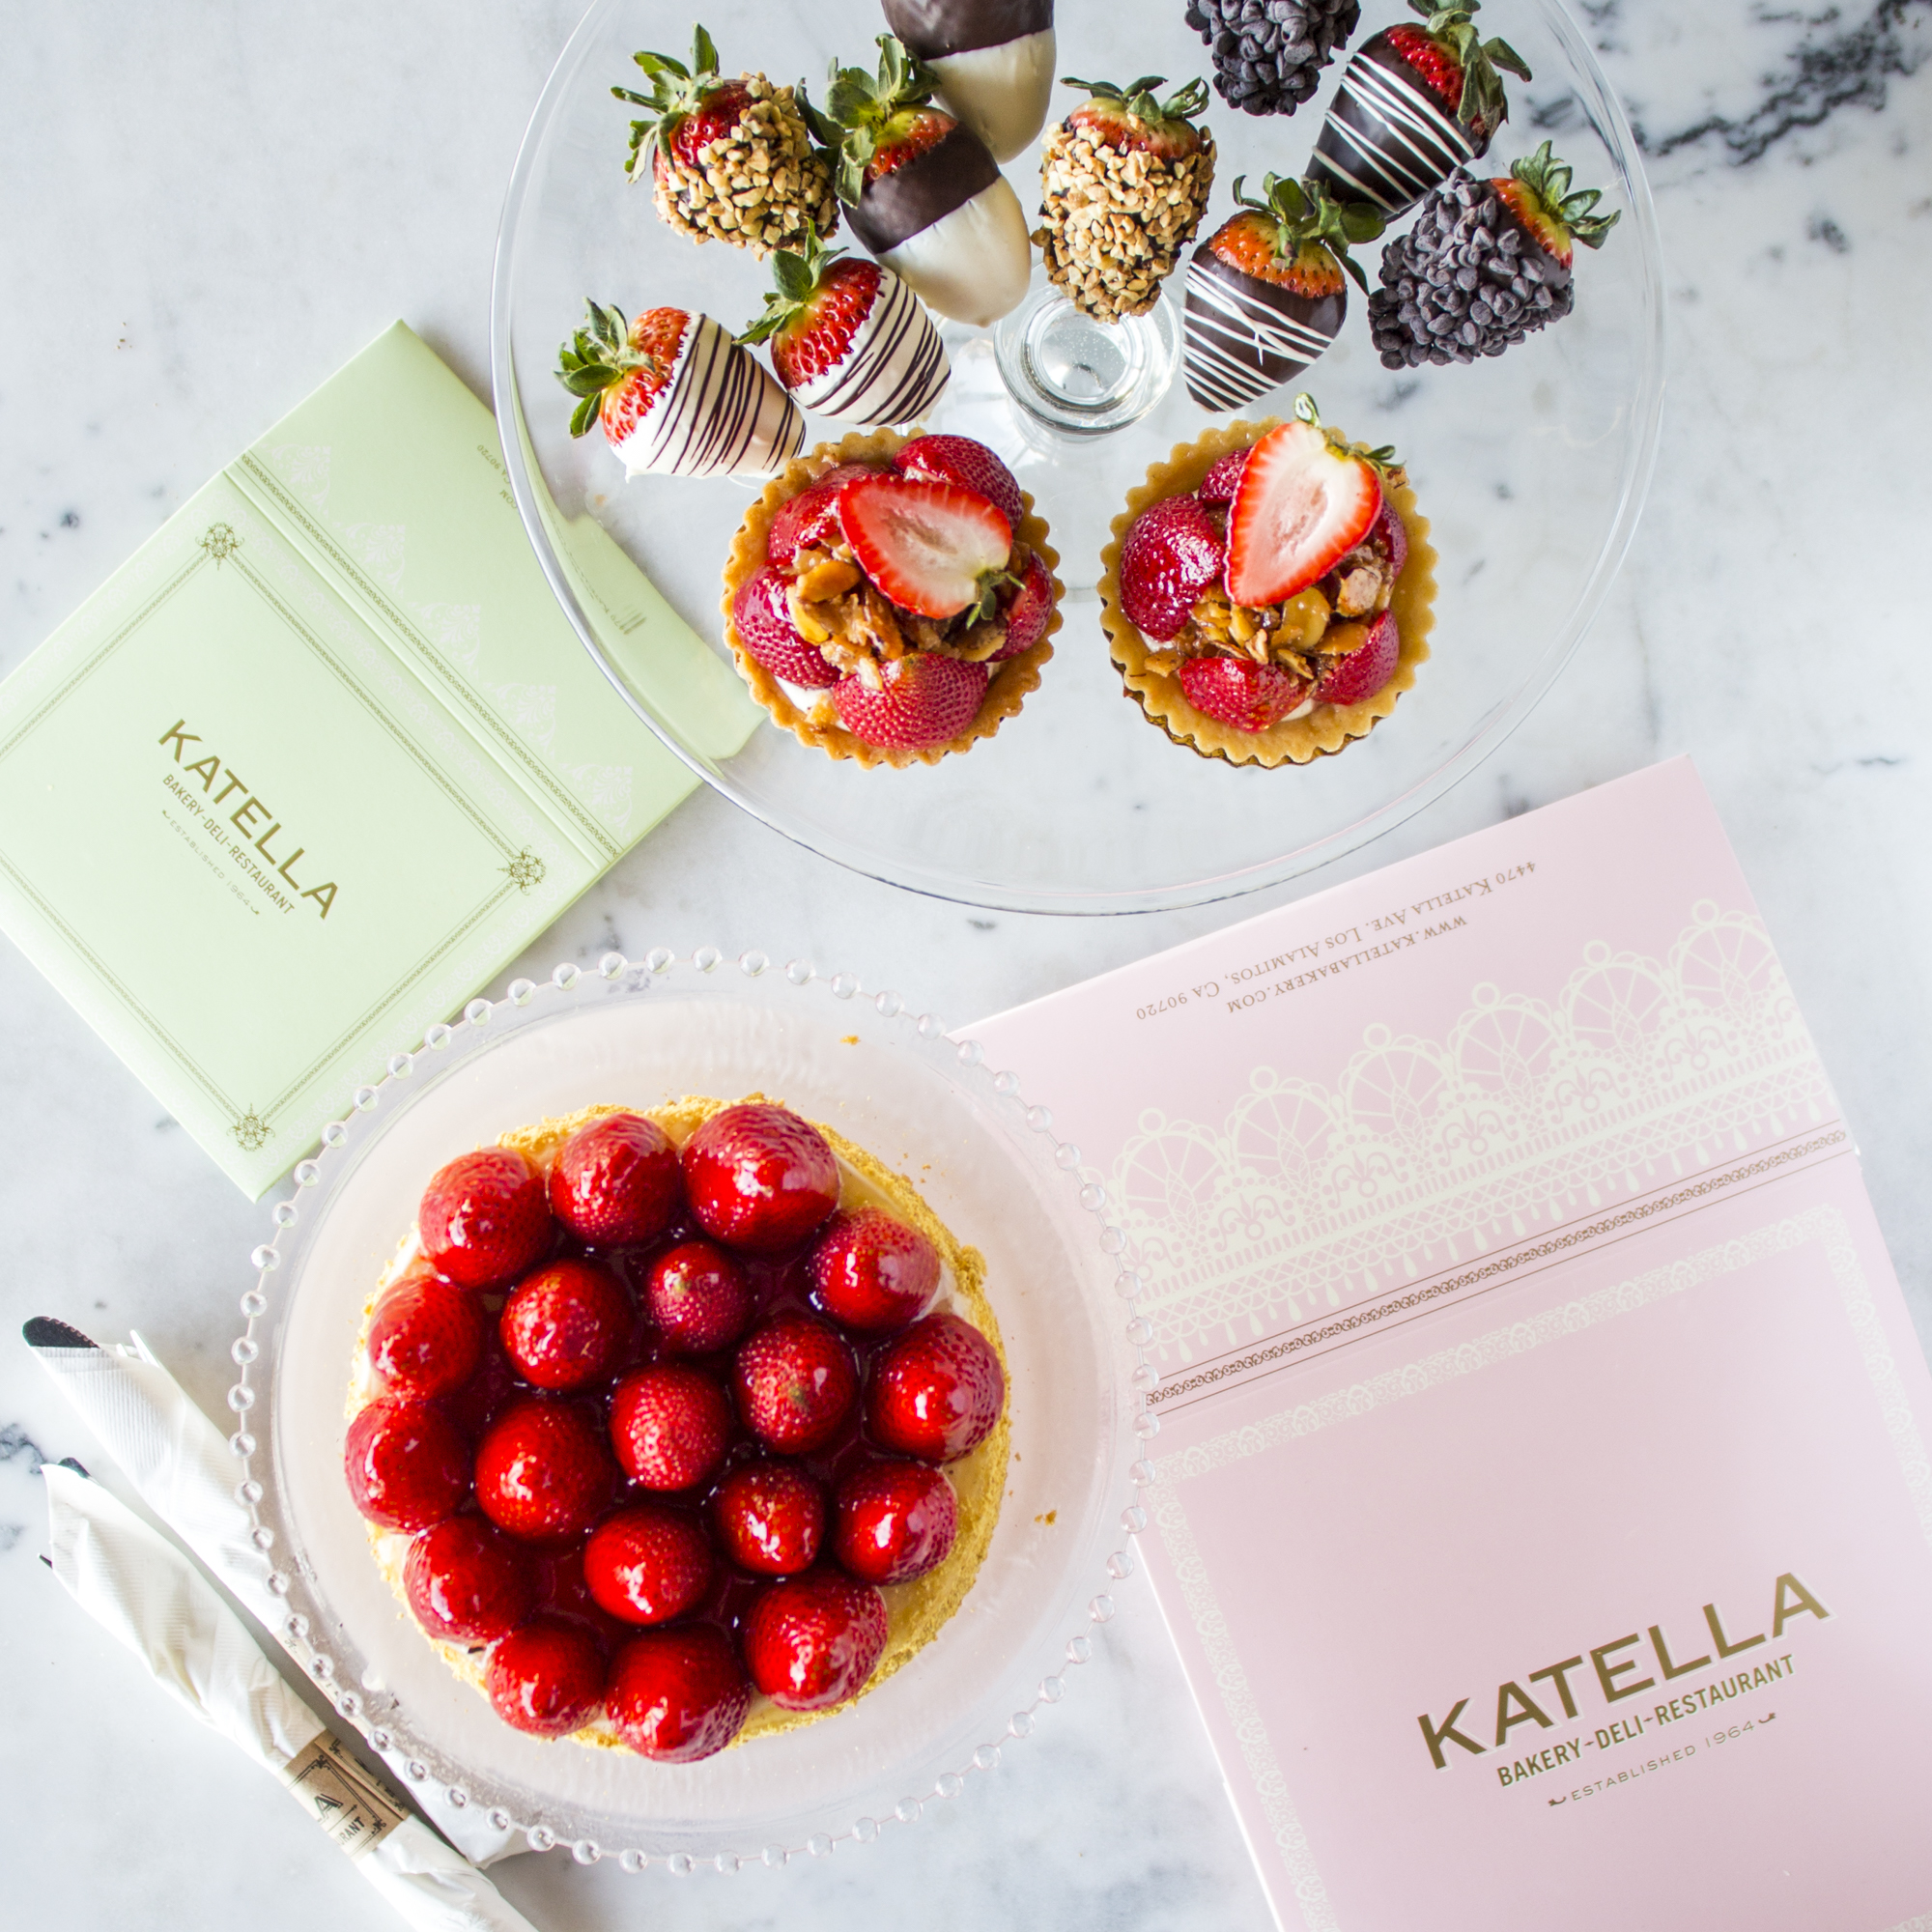 Katella Bakery display of specialty desserts highlighting fresh strawberries